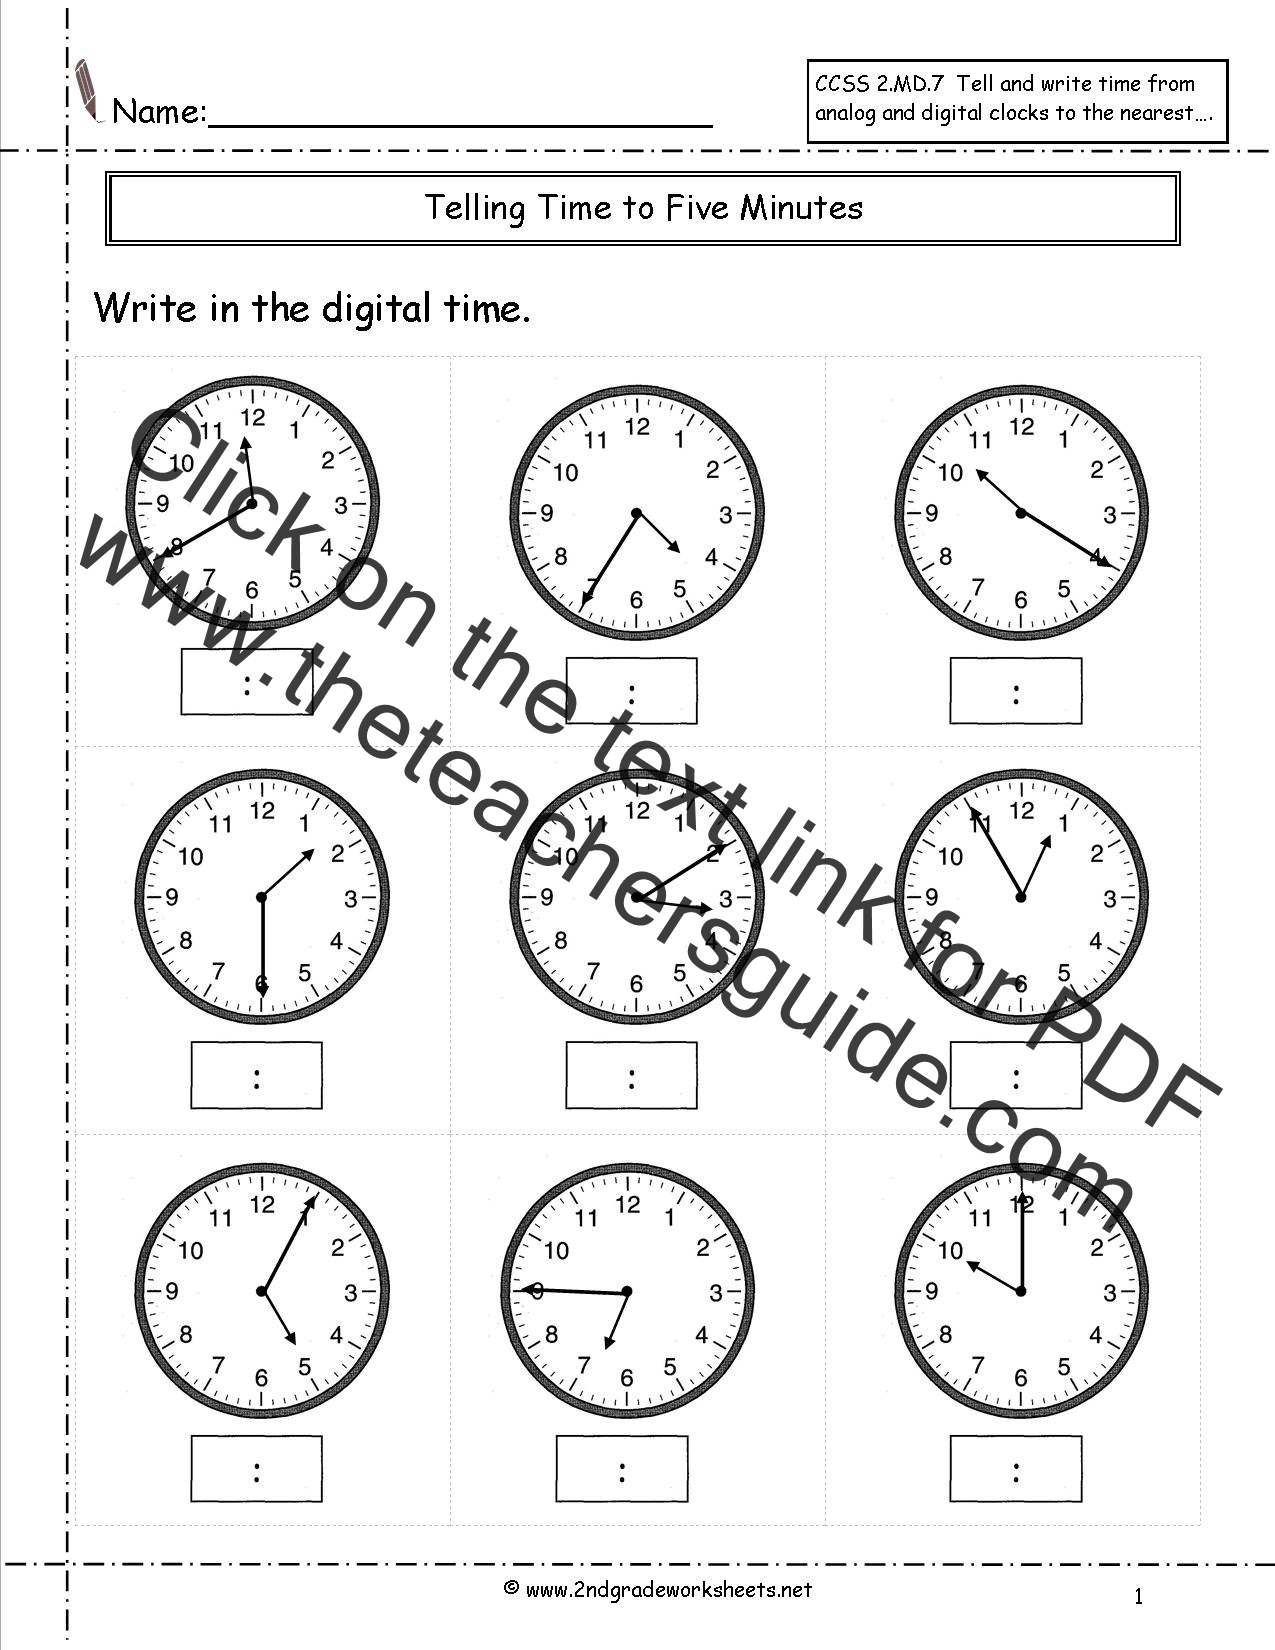 Ccss 2 Md 7 Worksheets Telling Time To Five Minutes